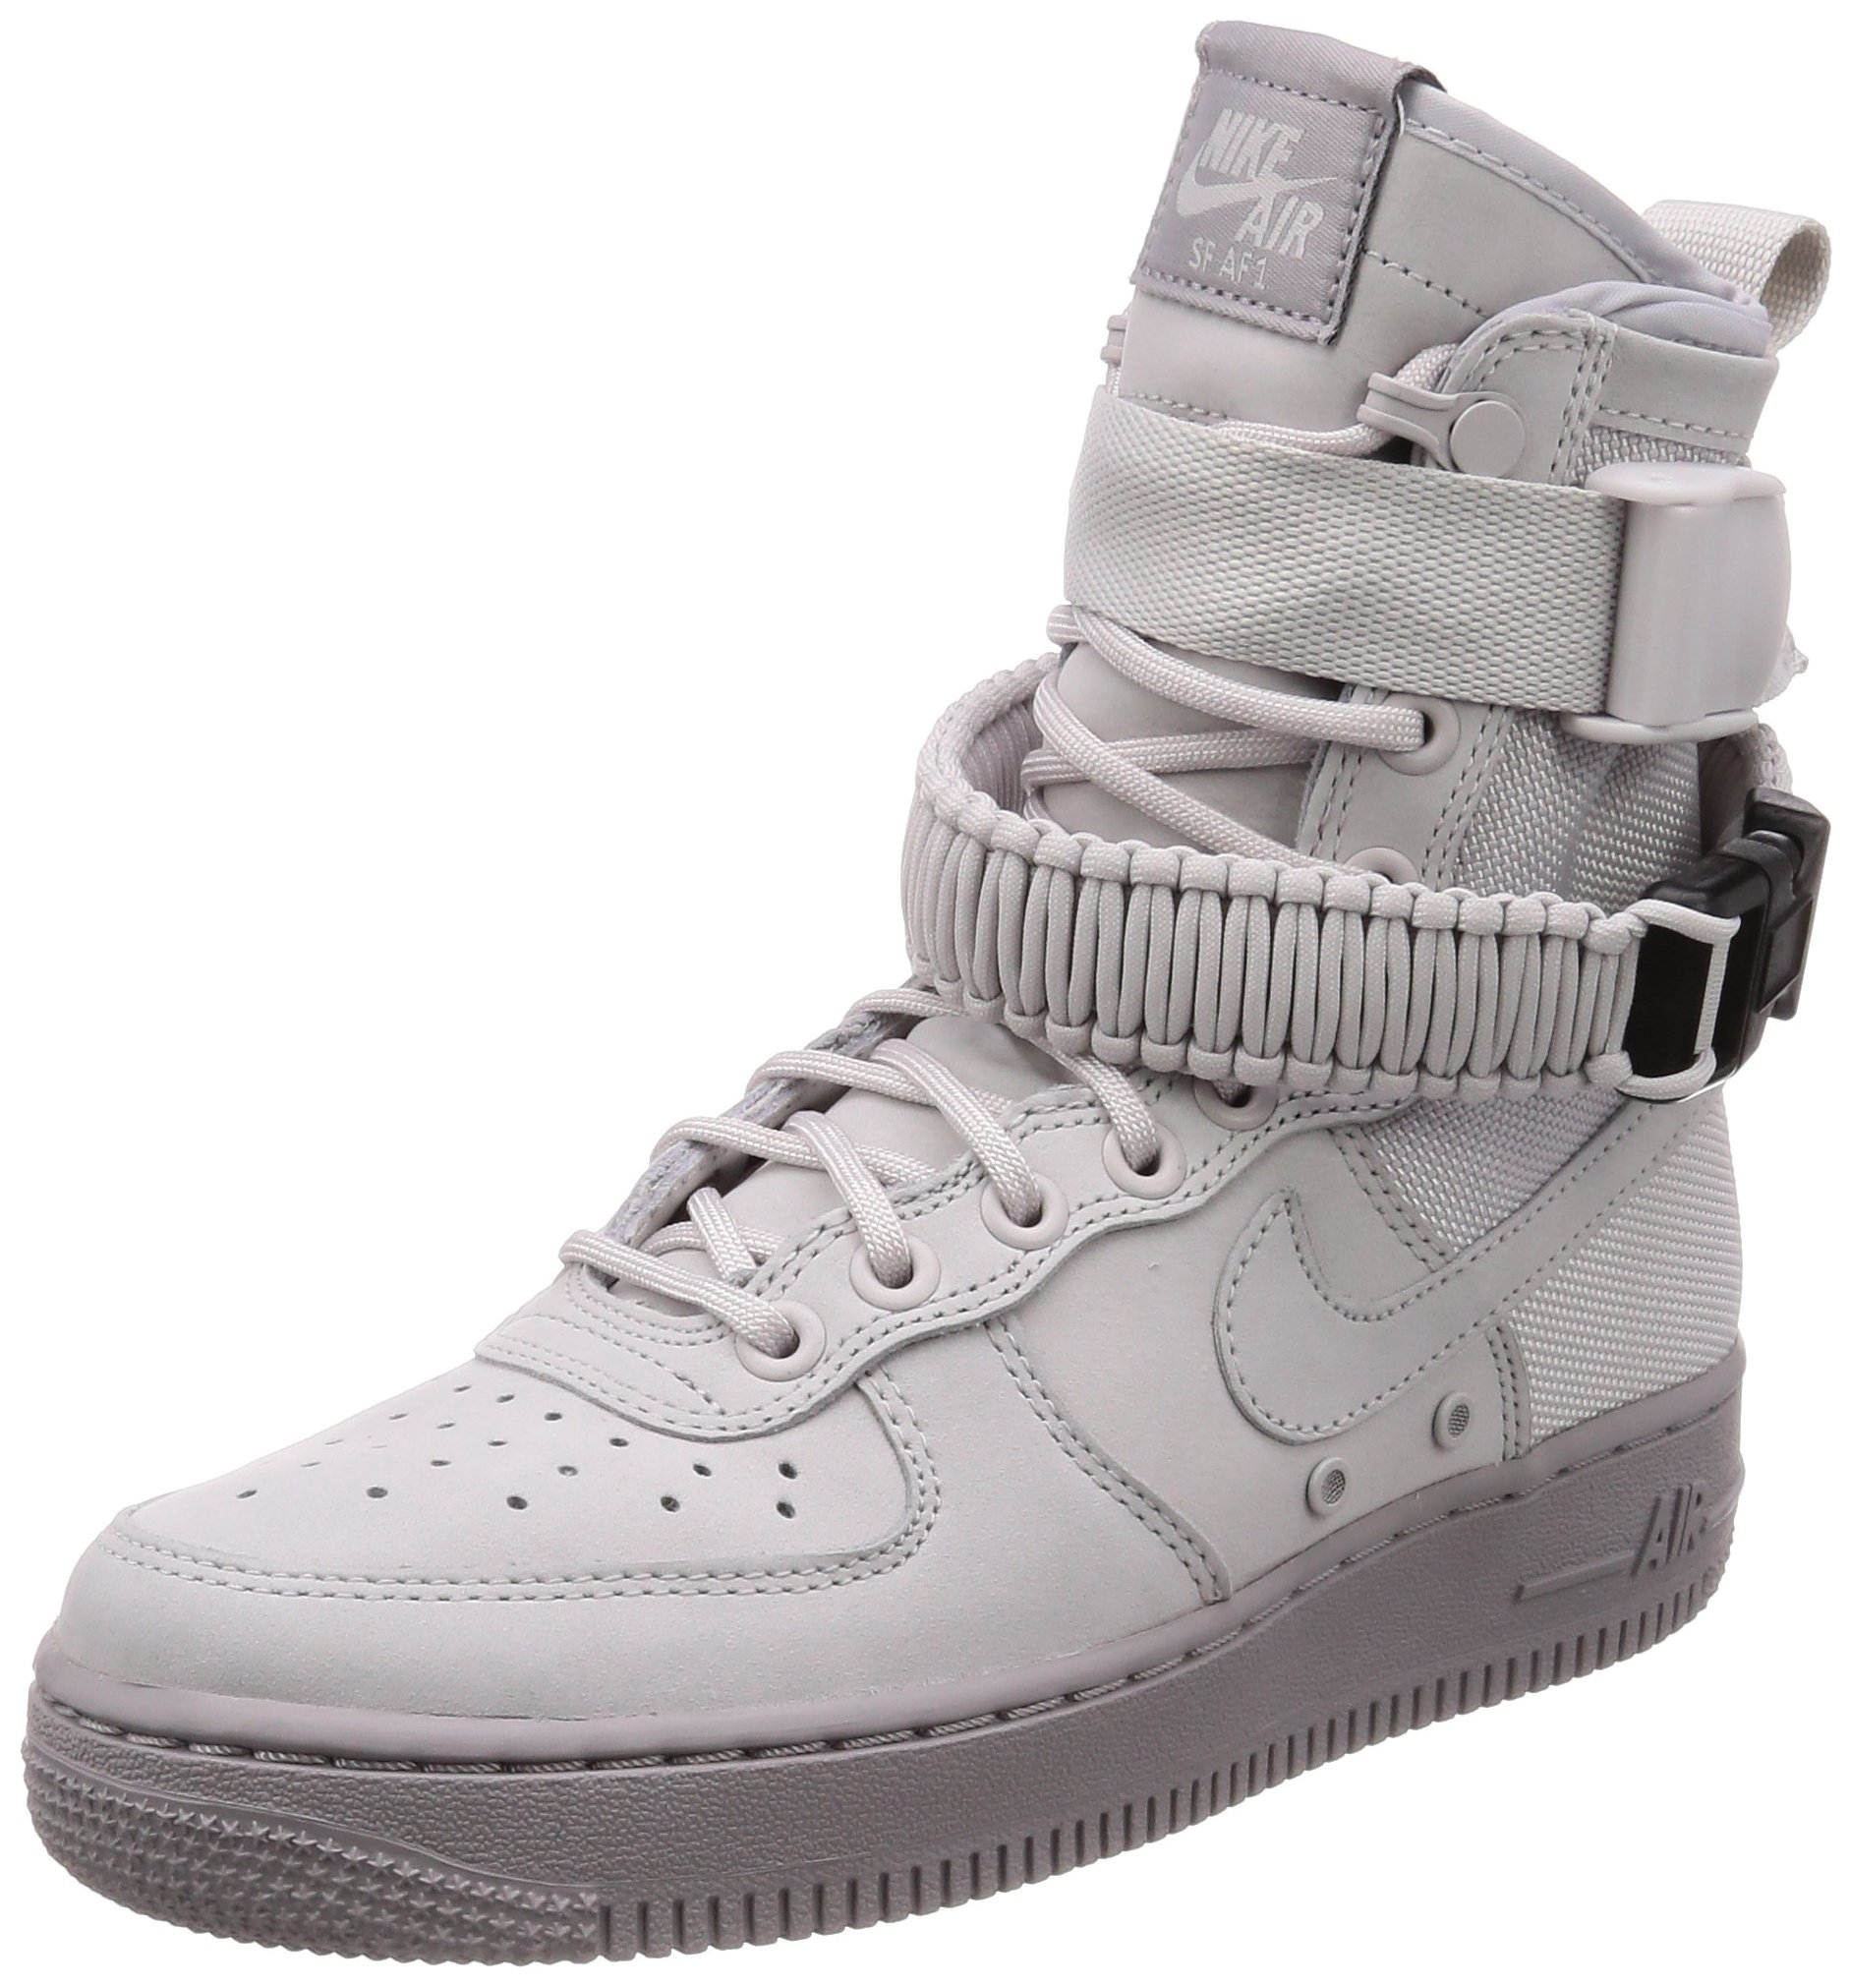 Nike Womens SF Air Force 1 Boots Vast Grey/Atmosphere Grey 857872-003 Size 7